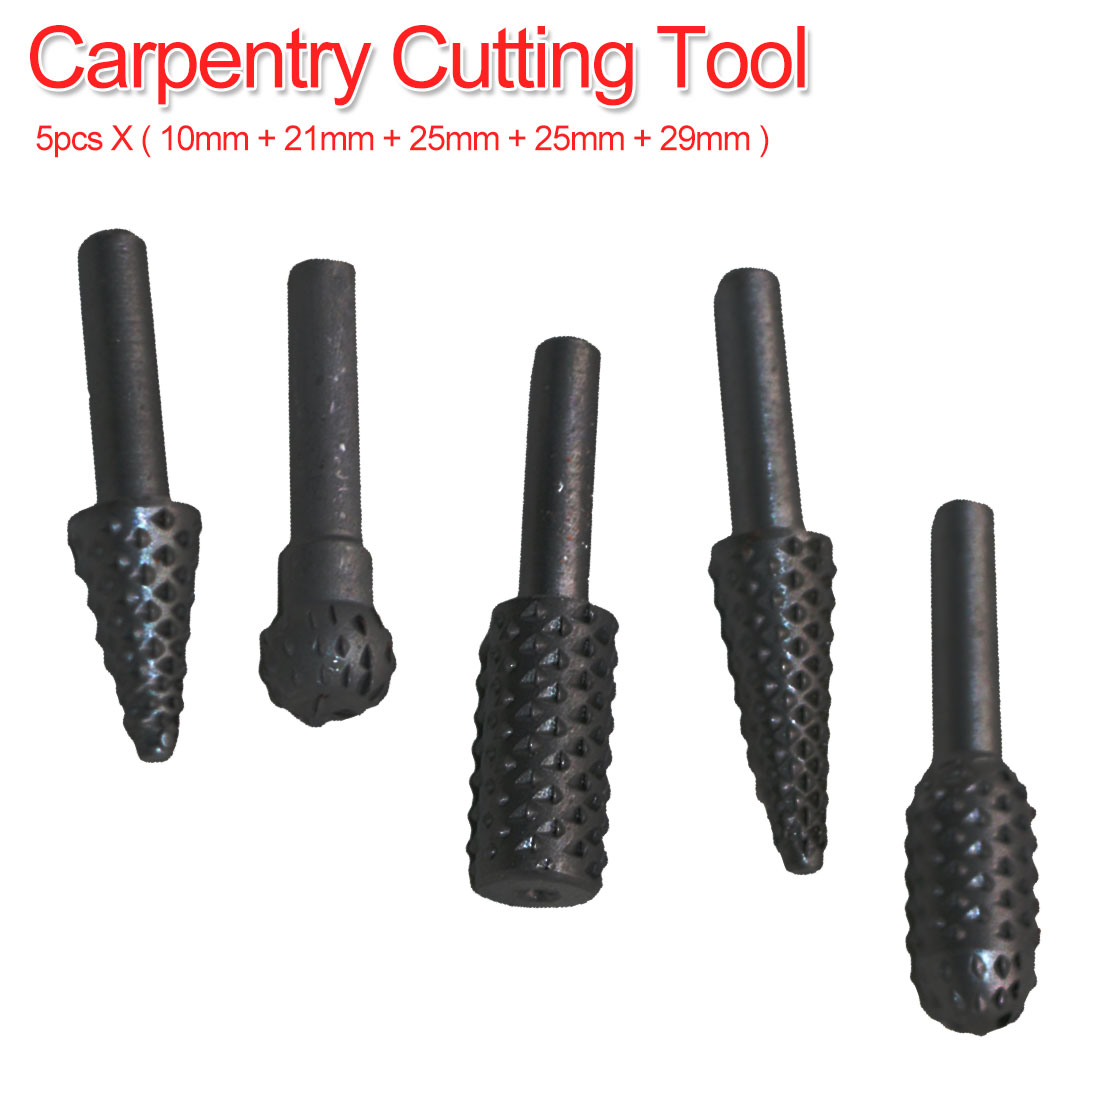 Drill Bit Set 10mm 21mm 25mm 25mm 29mm 5pcs 6.35mm Carpentry Cutting Tool Woodworking Knife For Carving Chamfer Reaming Tool